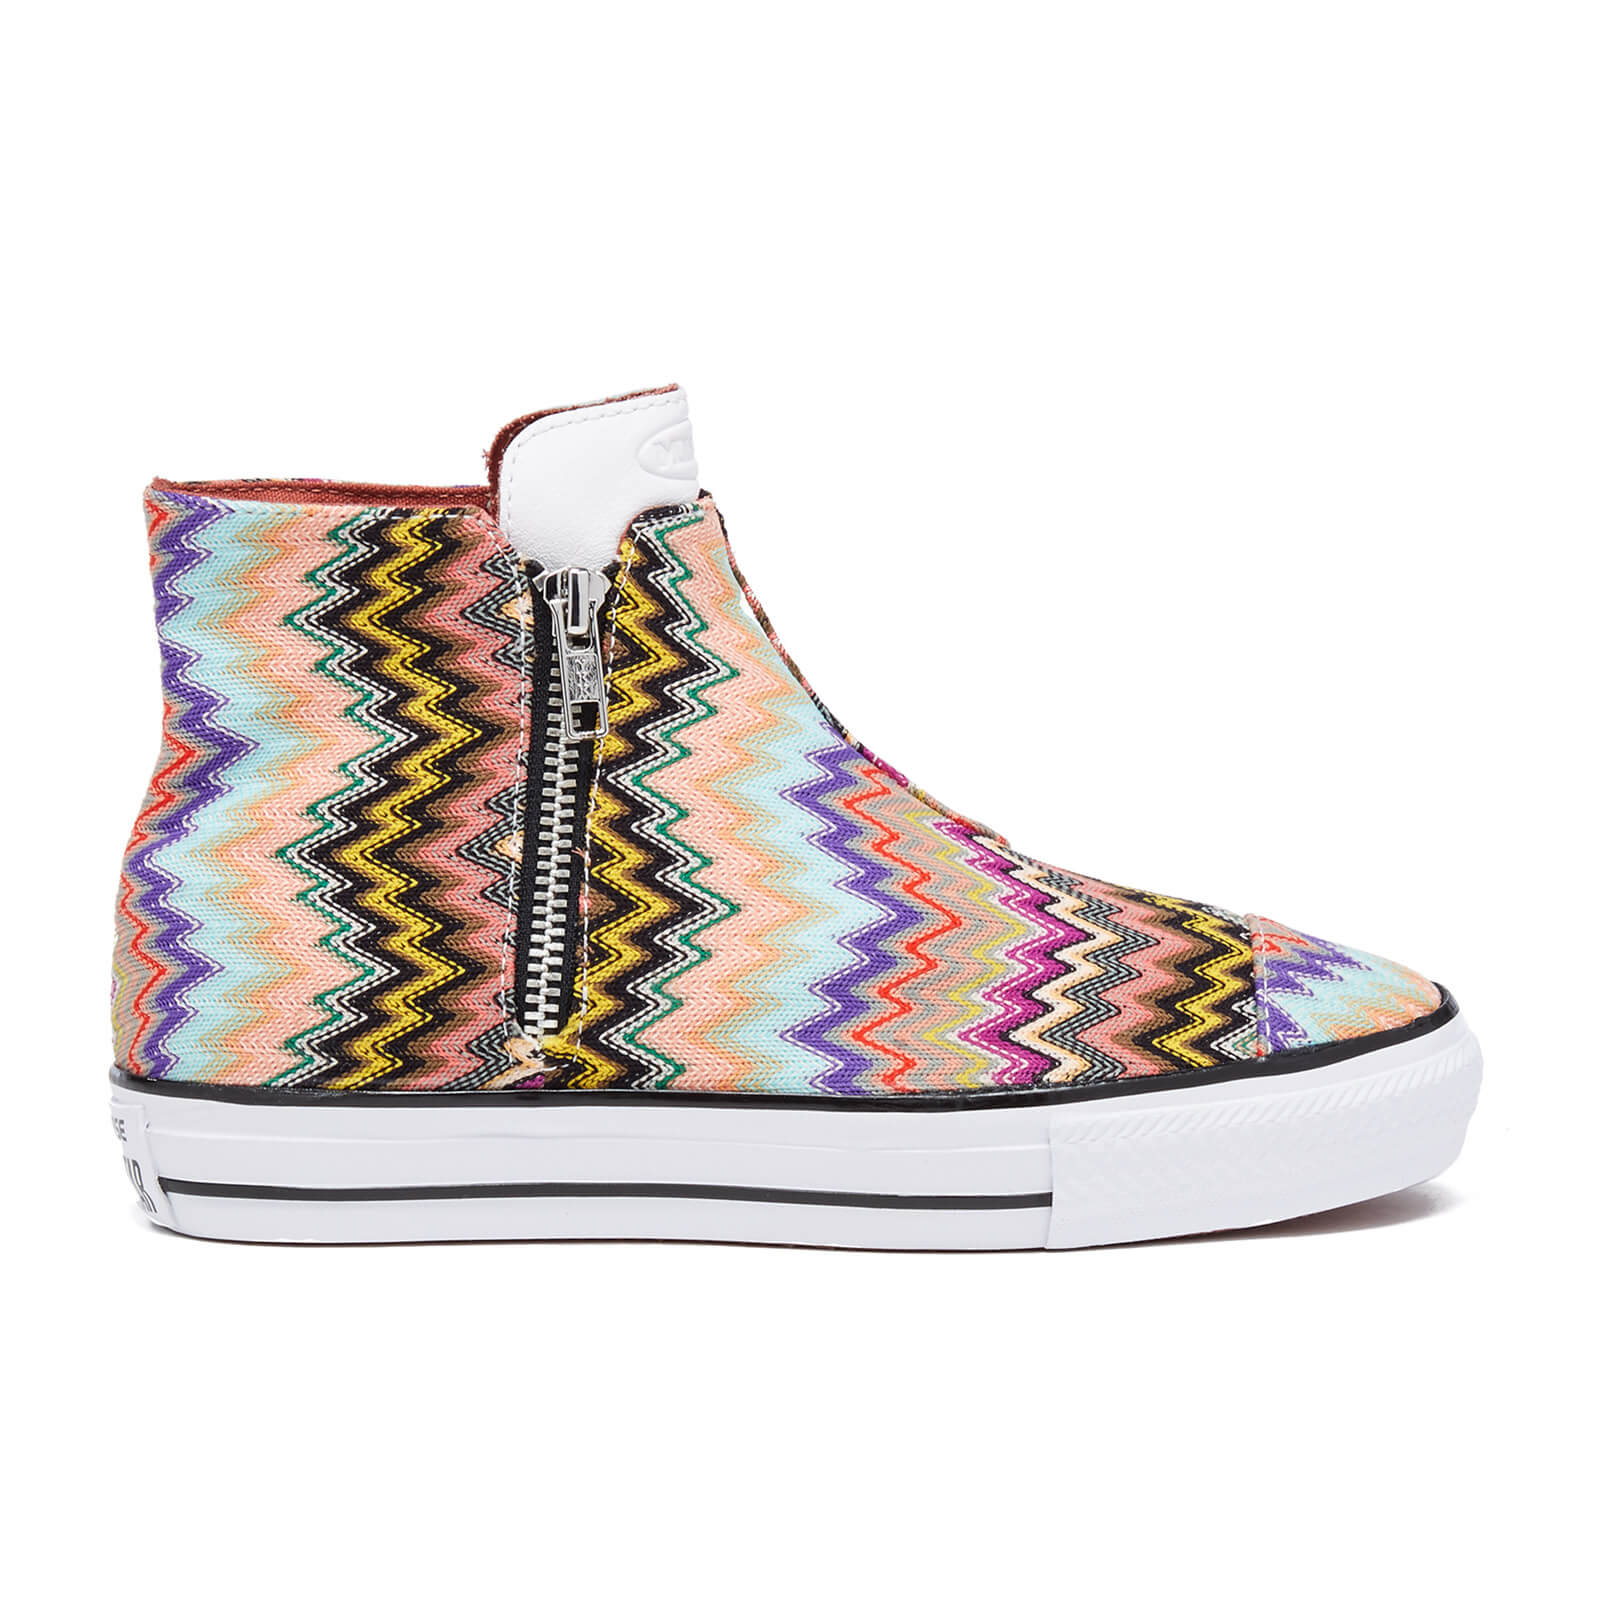 4693716bd5c981 Converse X Missoni Women s Chuck Taylor All Star High Line Trainers -  Multi White Black - Free UK Delivery over £50